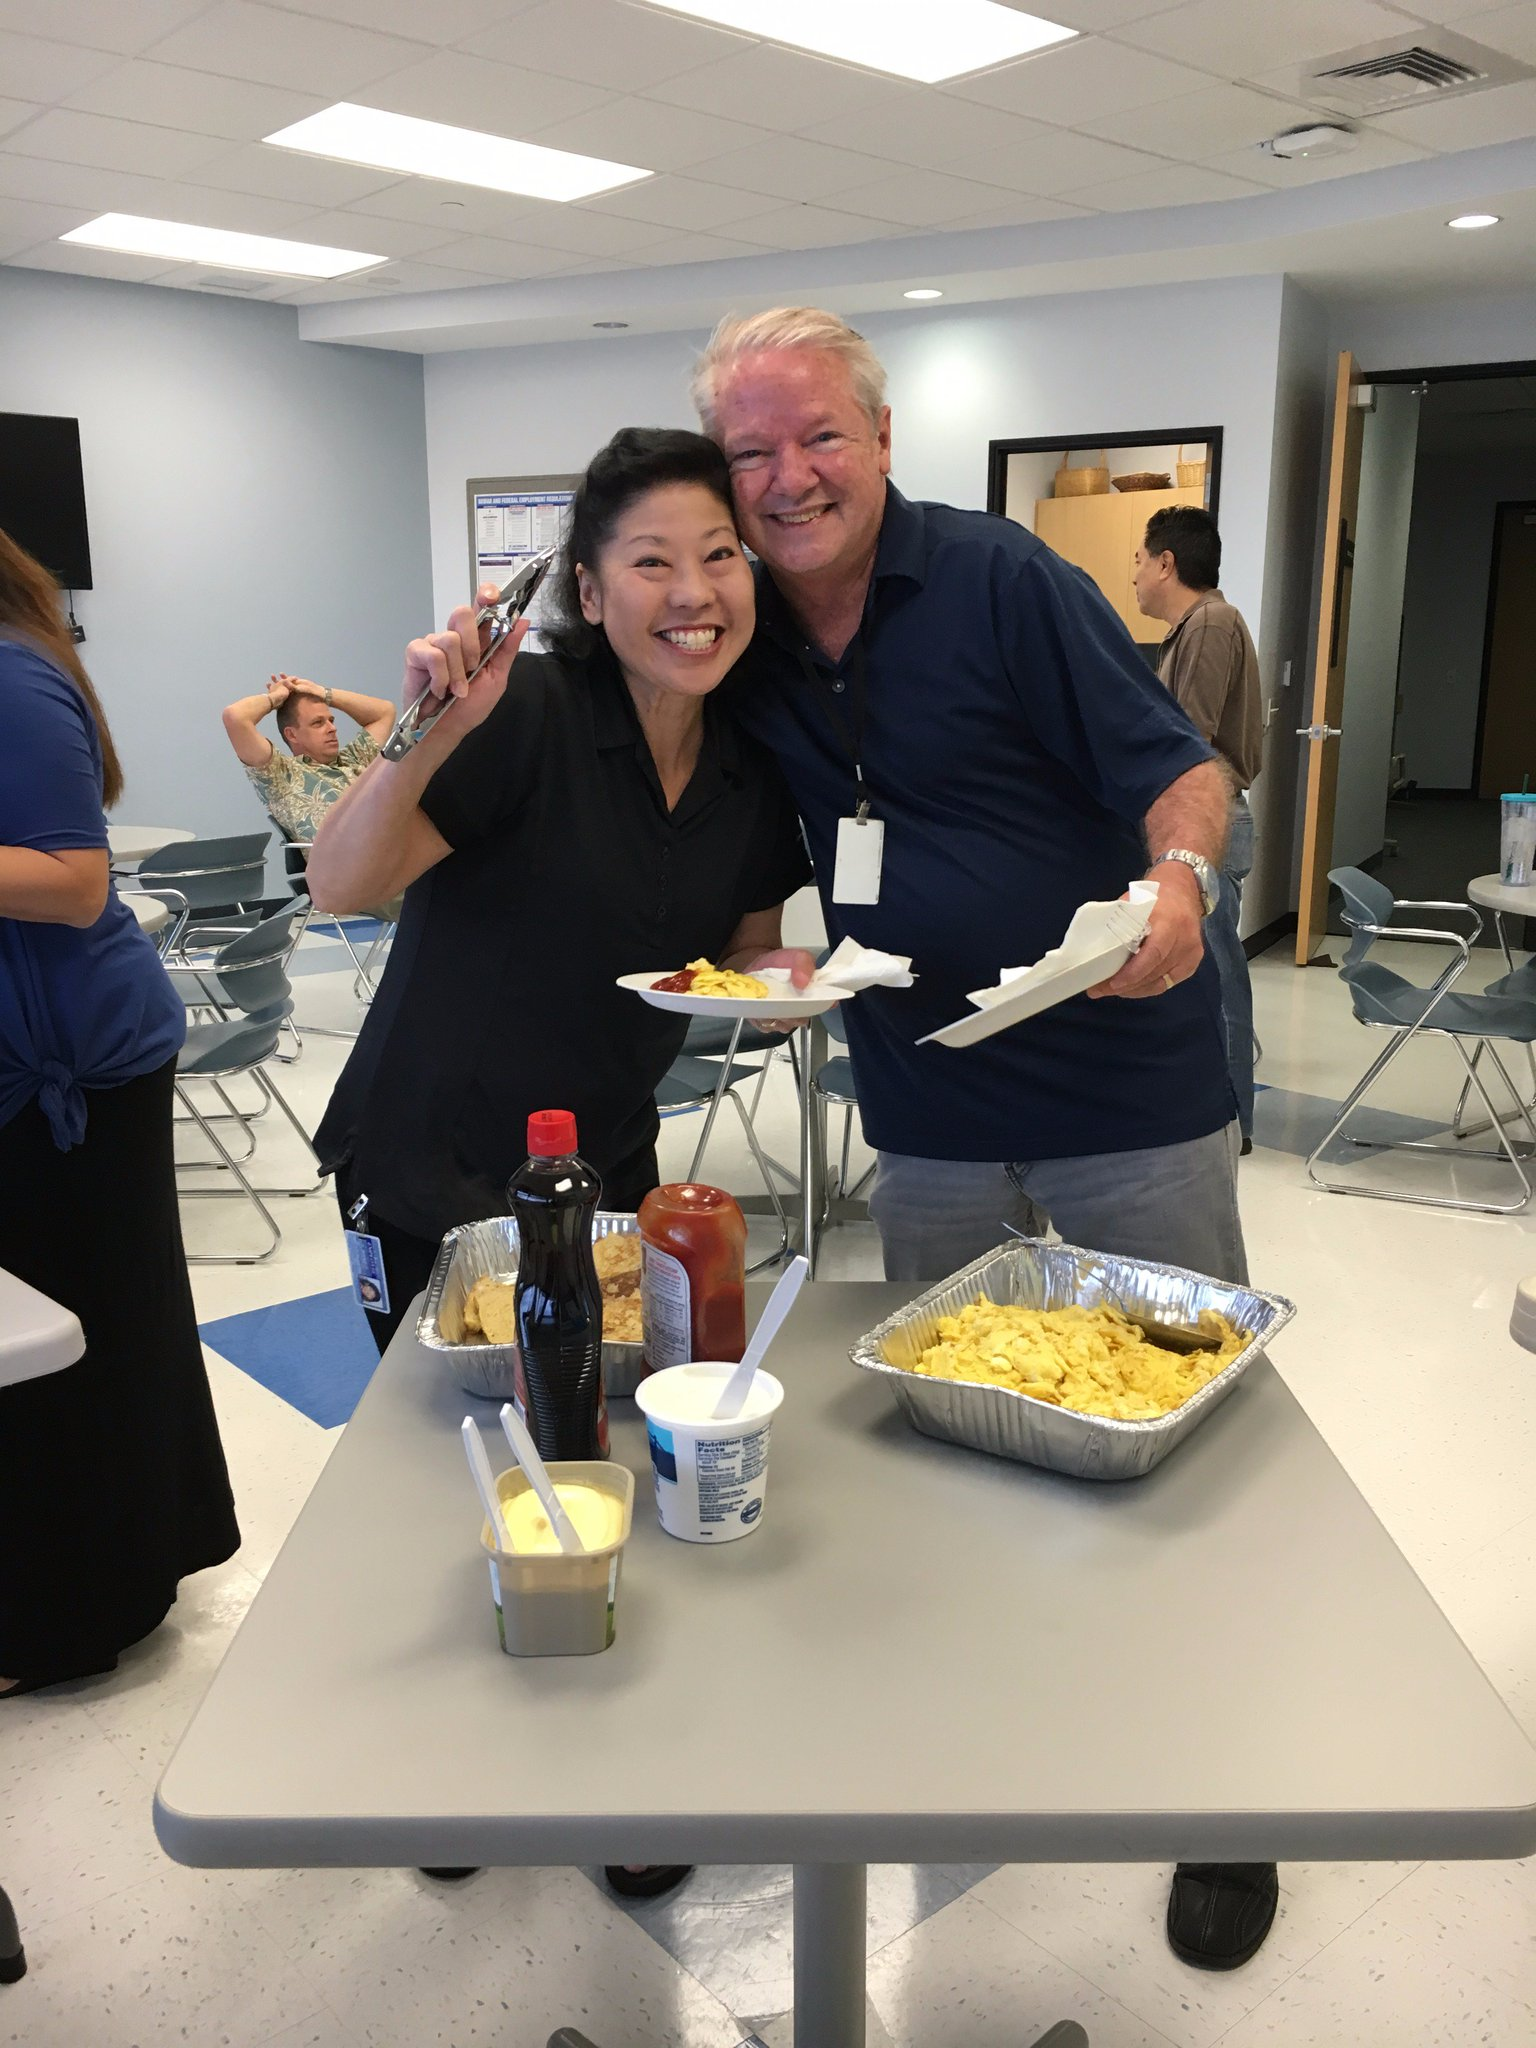 Happy customers at the @marchofdimesHI breakfast #ceridianhawaii50 https://t.co/5No4xjGELG